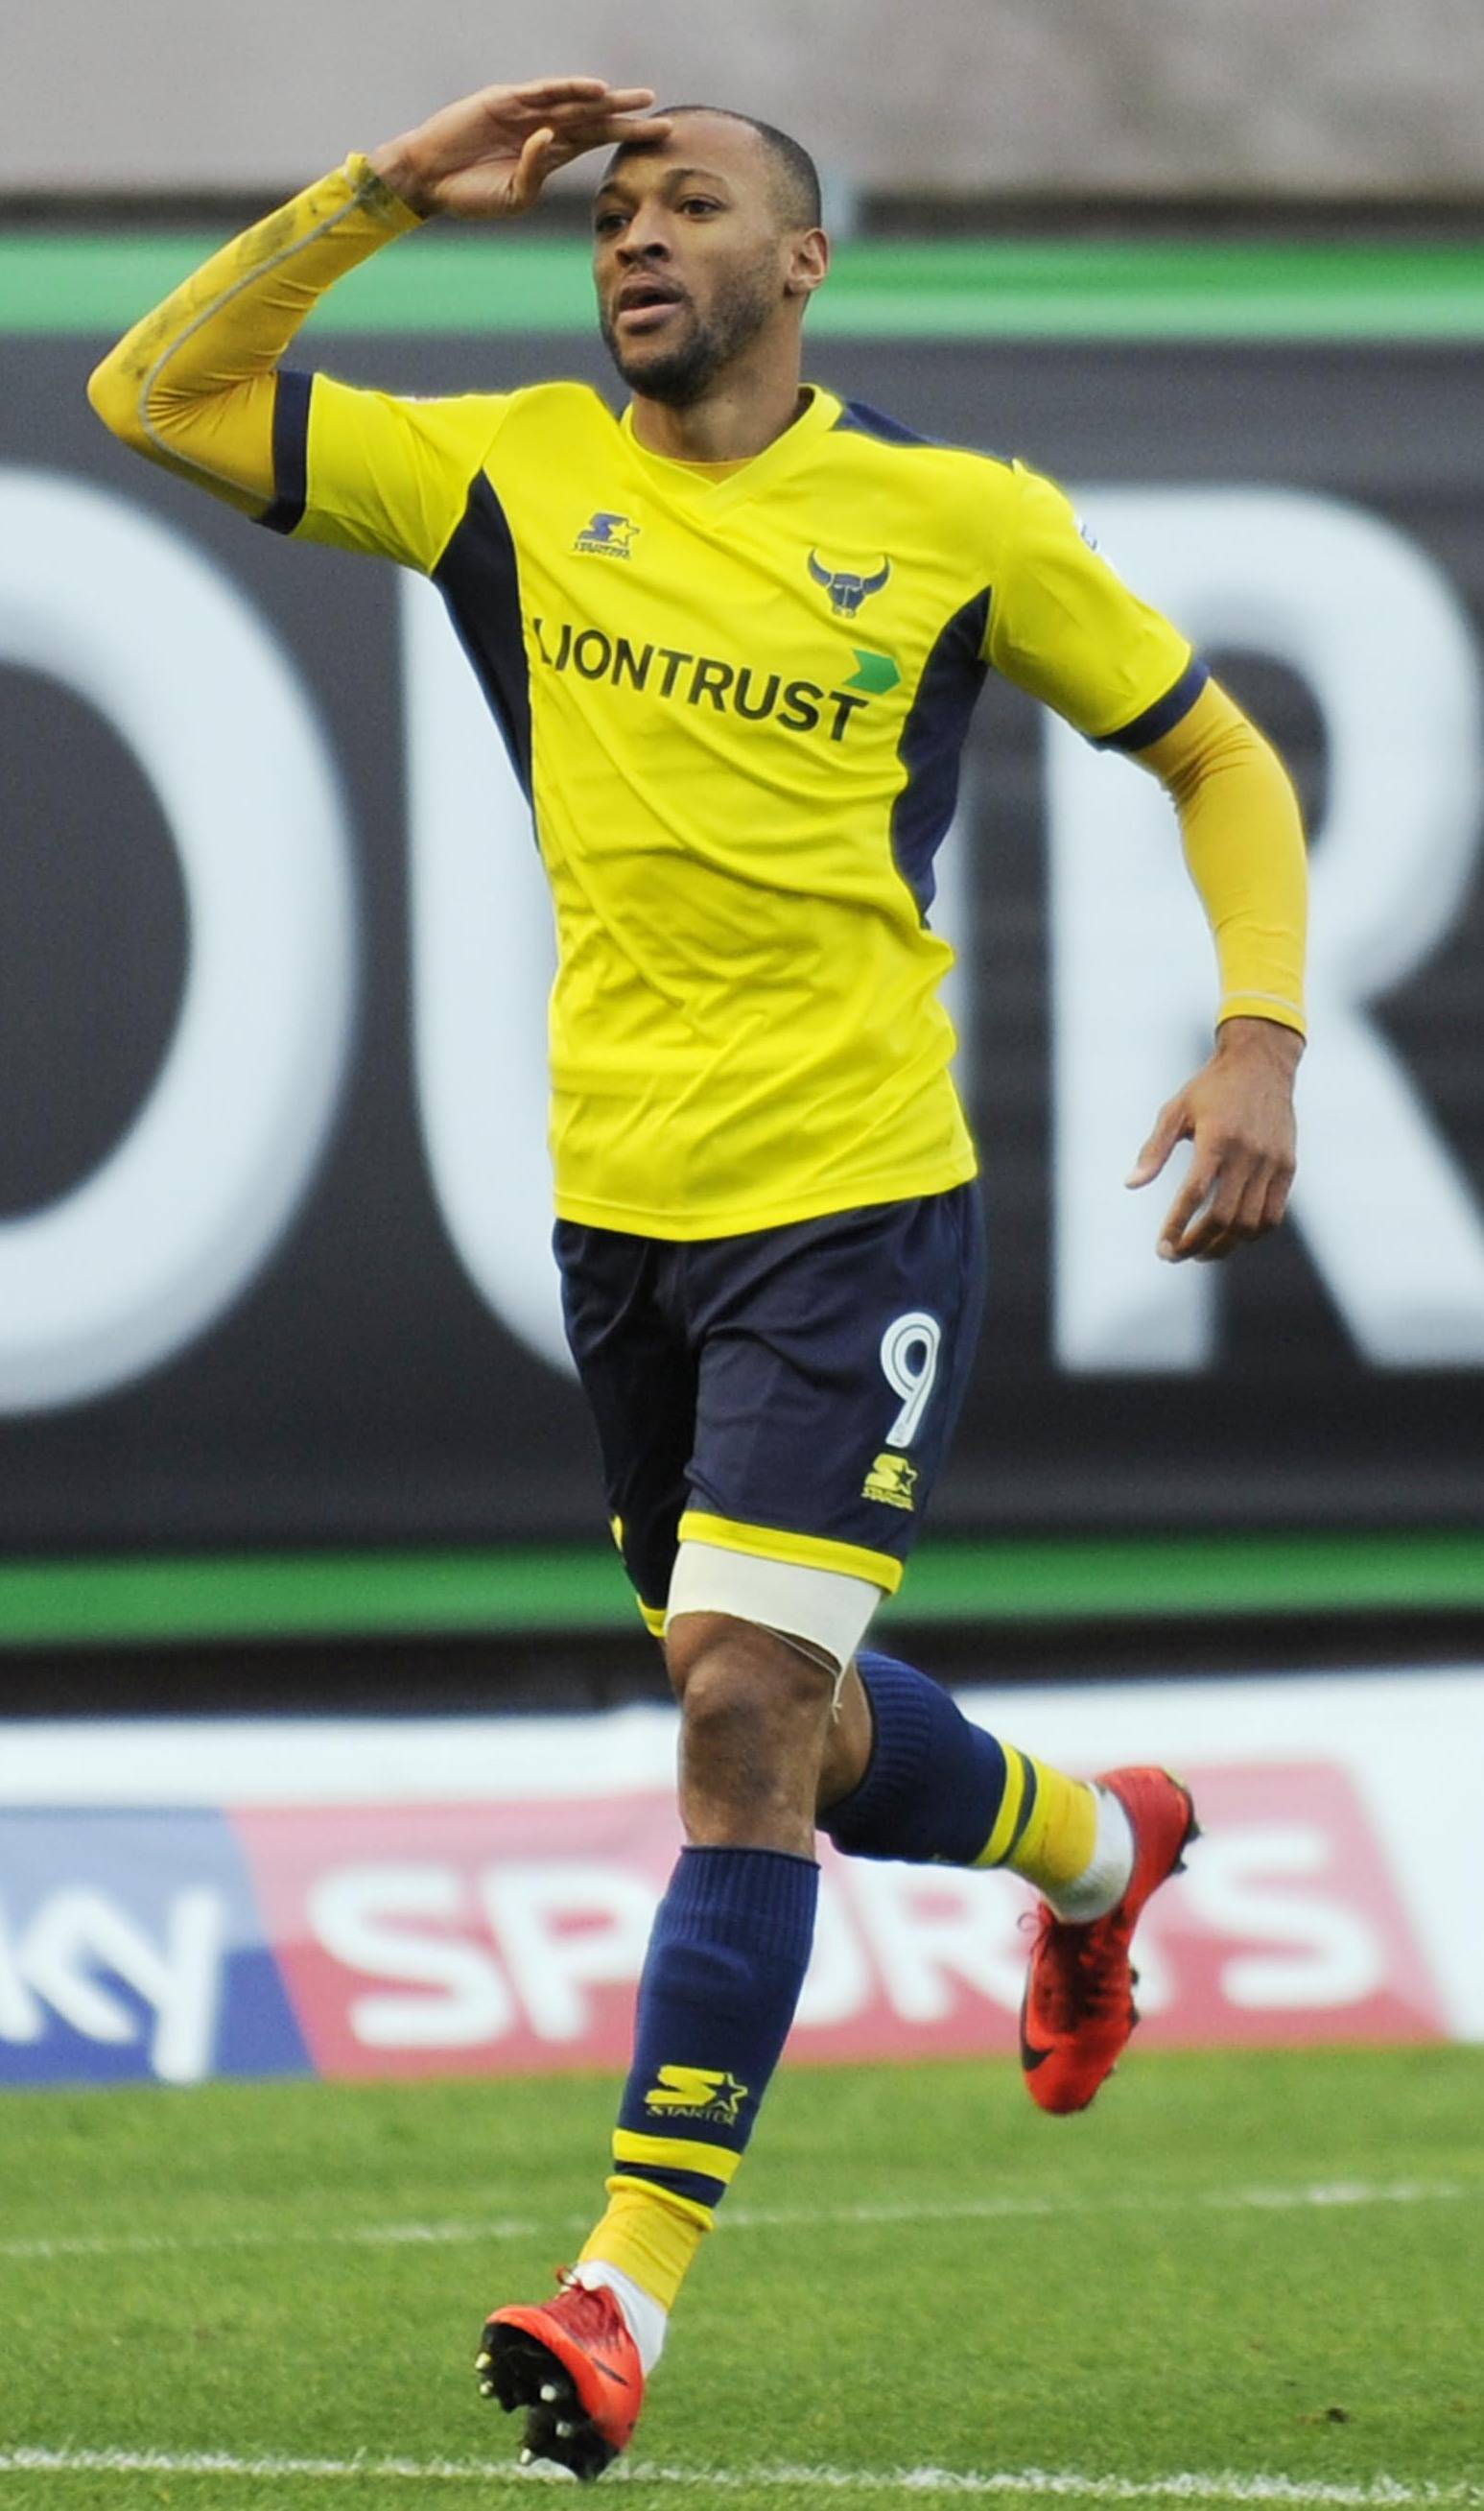 UP AND RUNNING: Wes Thomas celebrates his opening goal for Oxford United against Milton Keynes Dons Picture: David Fleming